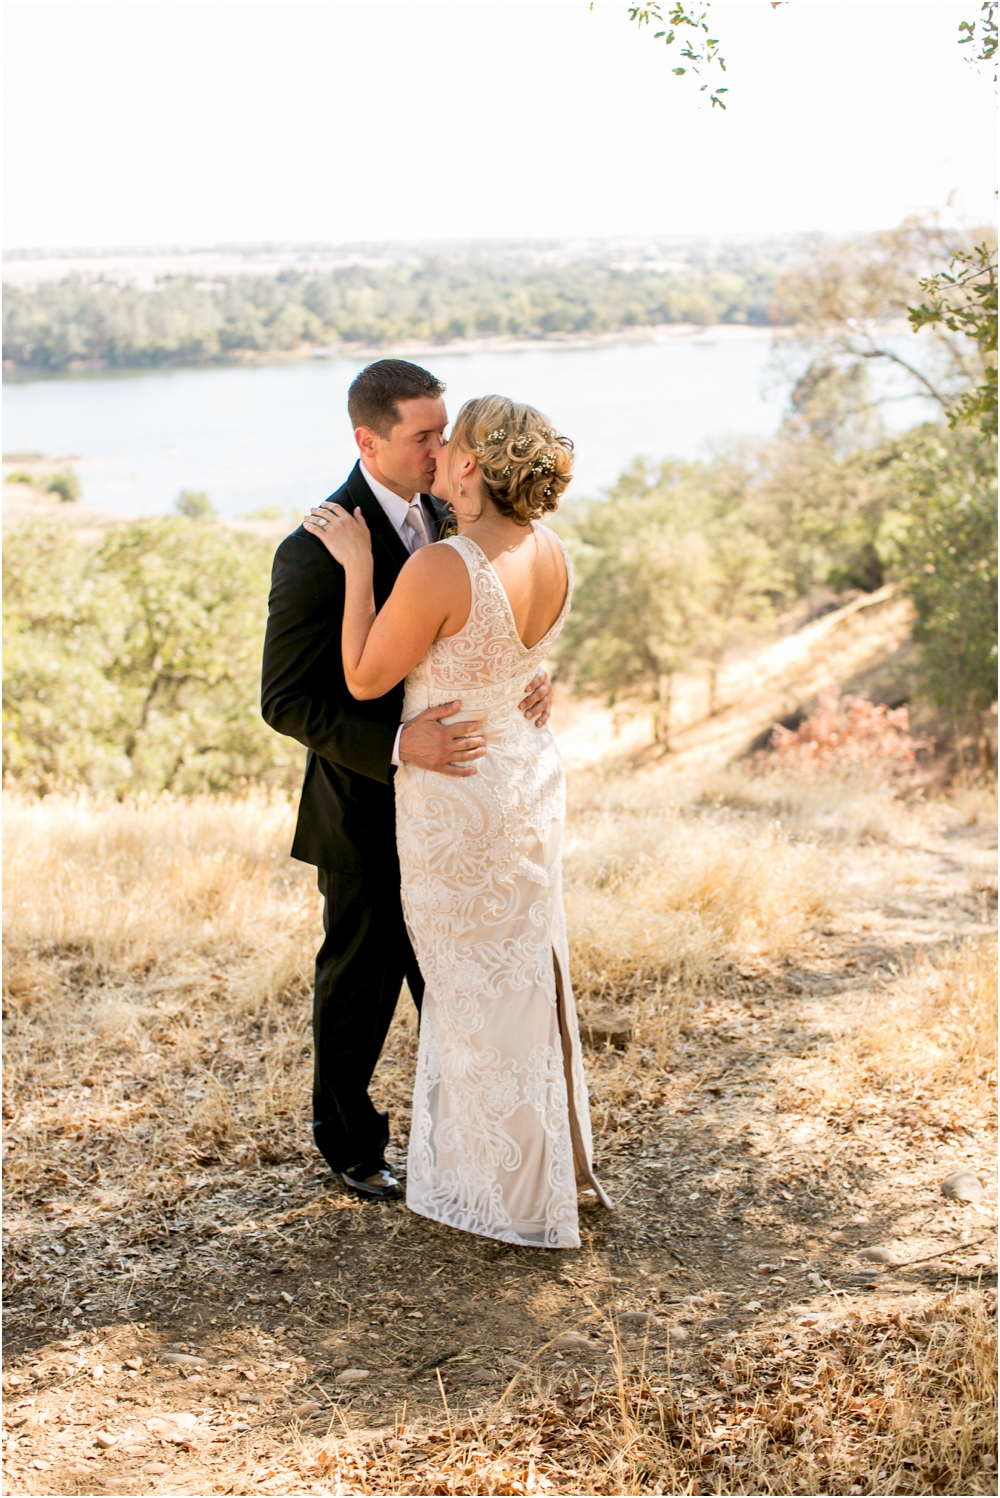 mutter destination wedding sacramento wedding living radiant photography photos_0021.jpg